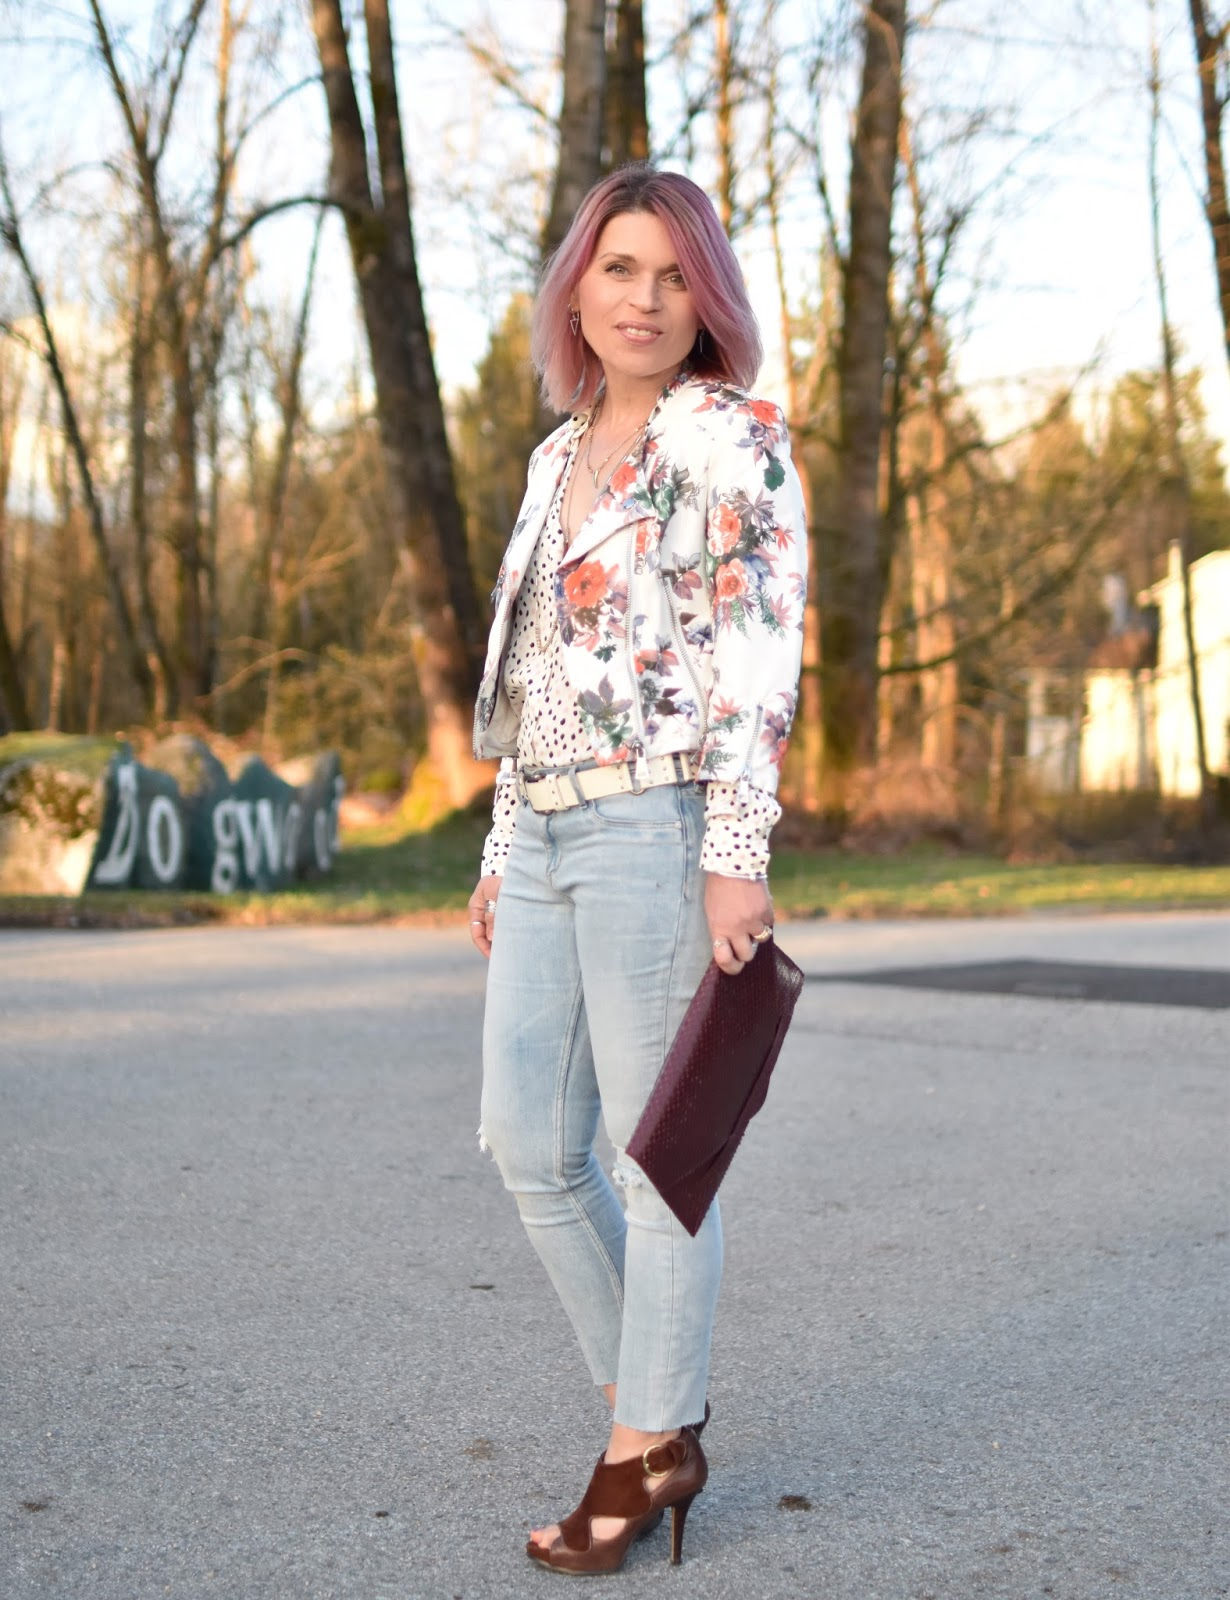 Monika Faulkner outfit inspiration - styling a dotted blouse with faded skinnies and a floral moto jacket